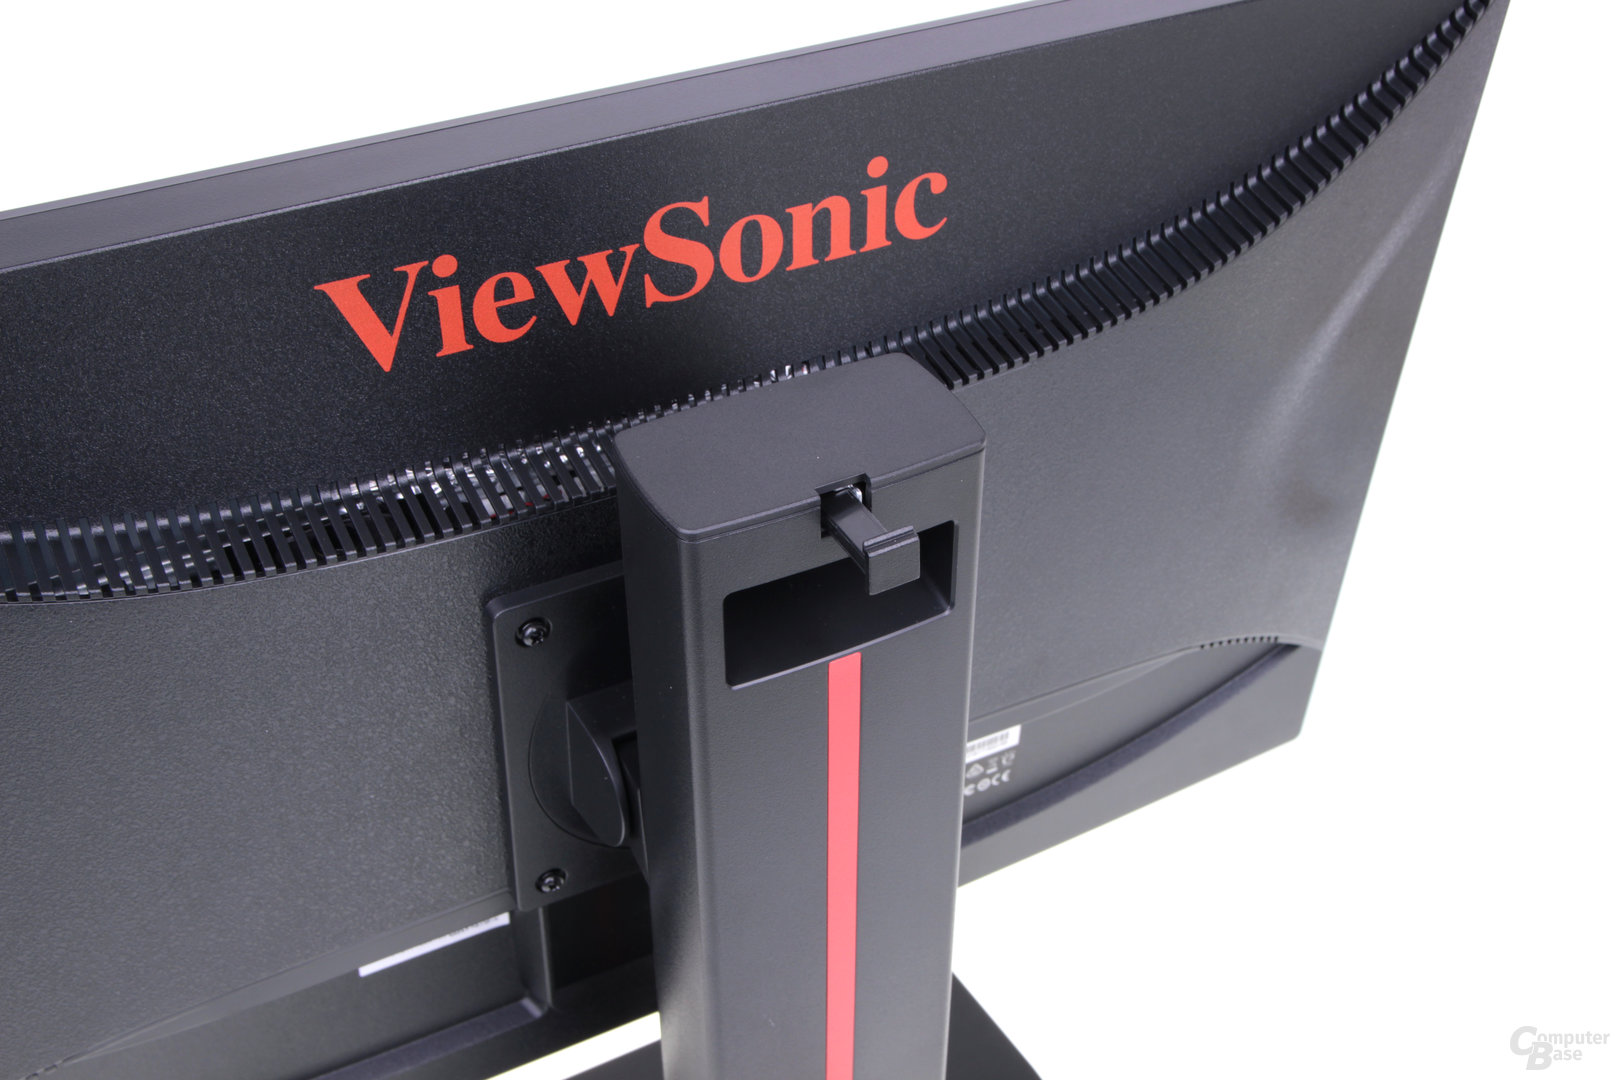 ViewSonic XG2530 im Test